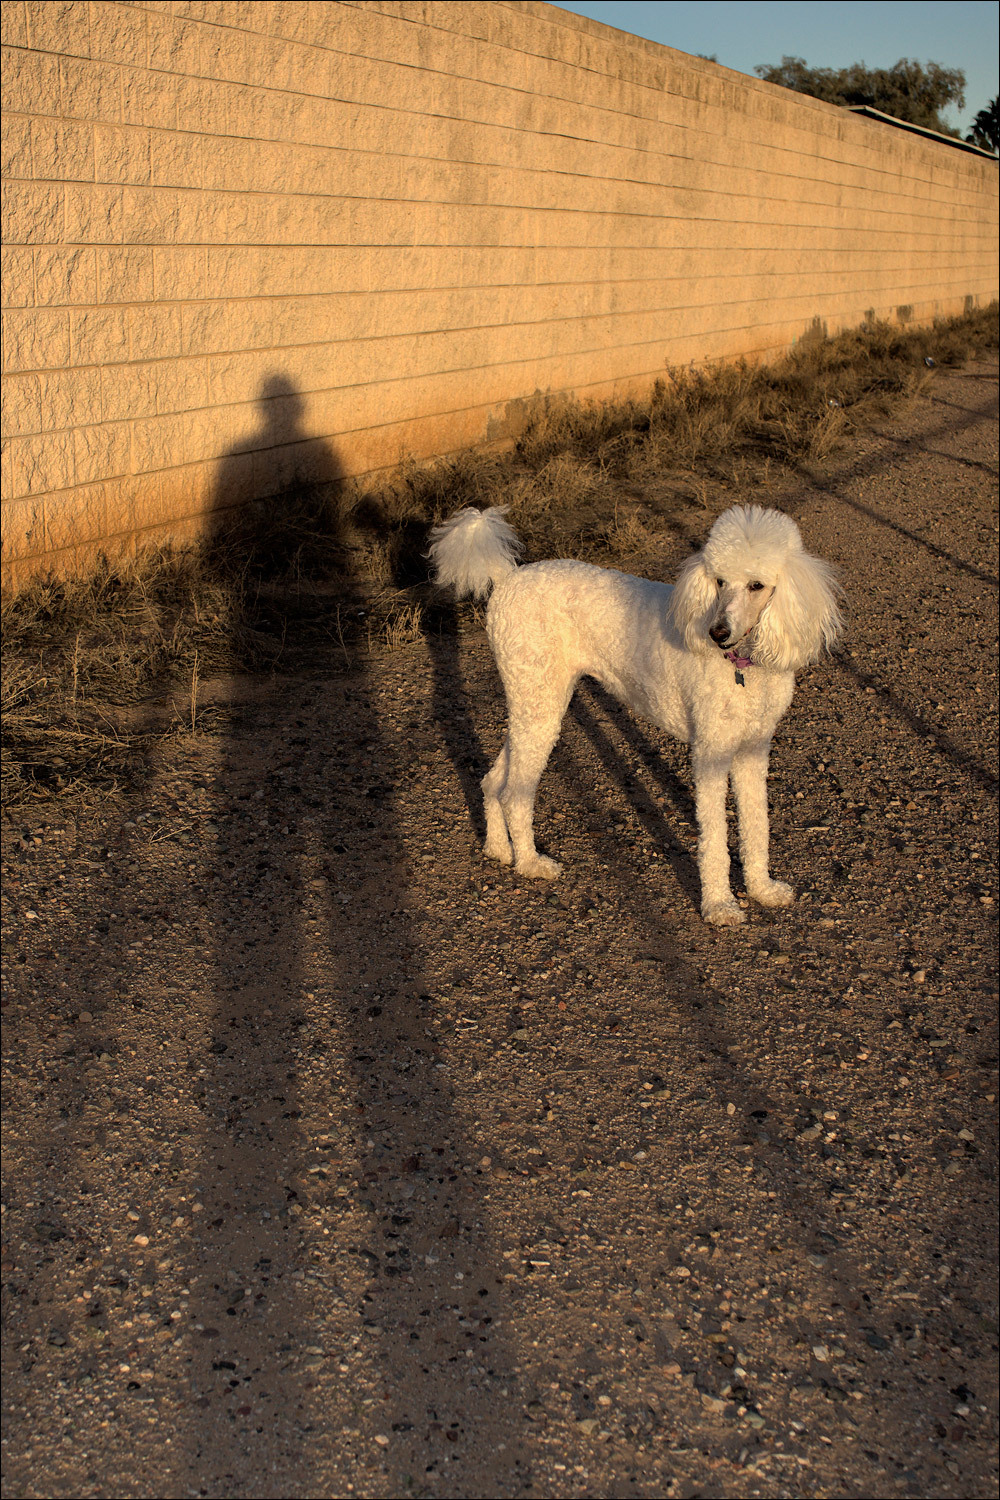 Abby and her shadow...